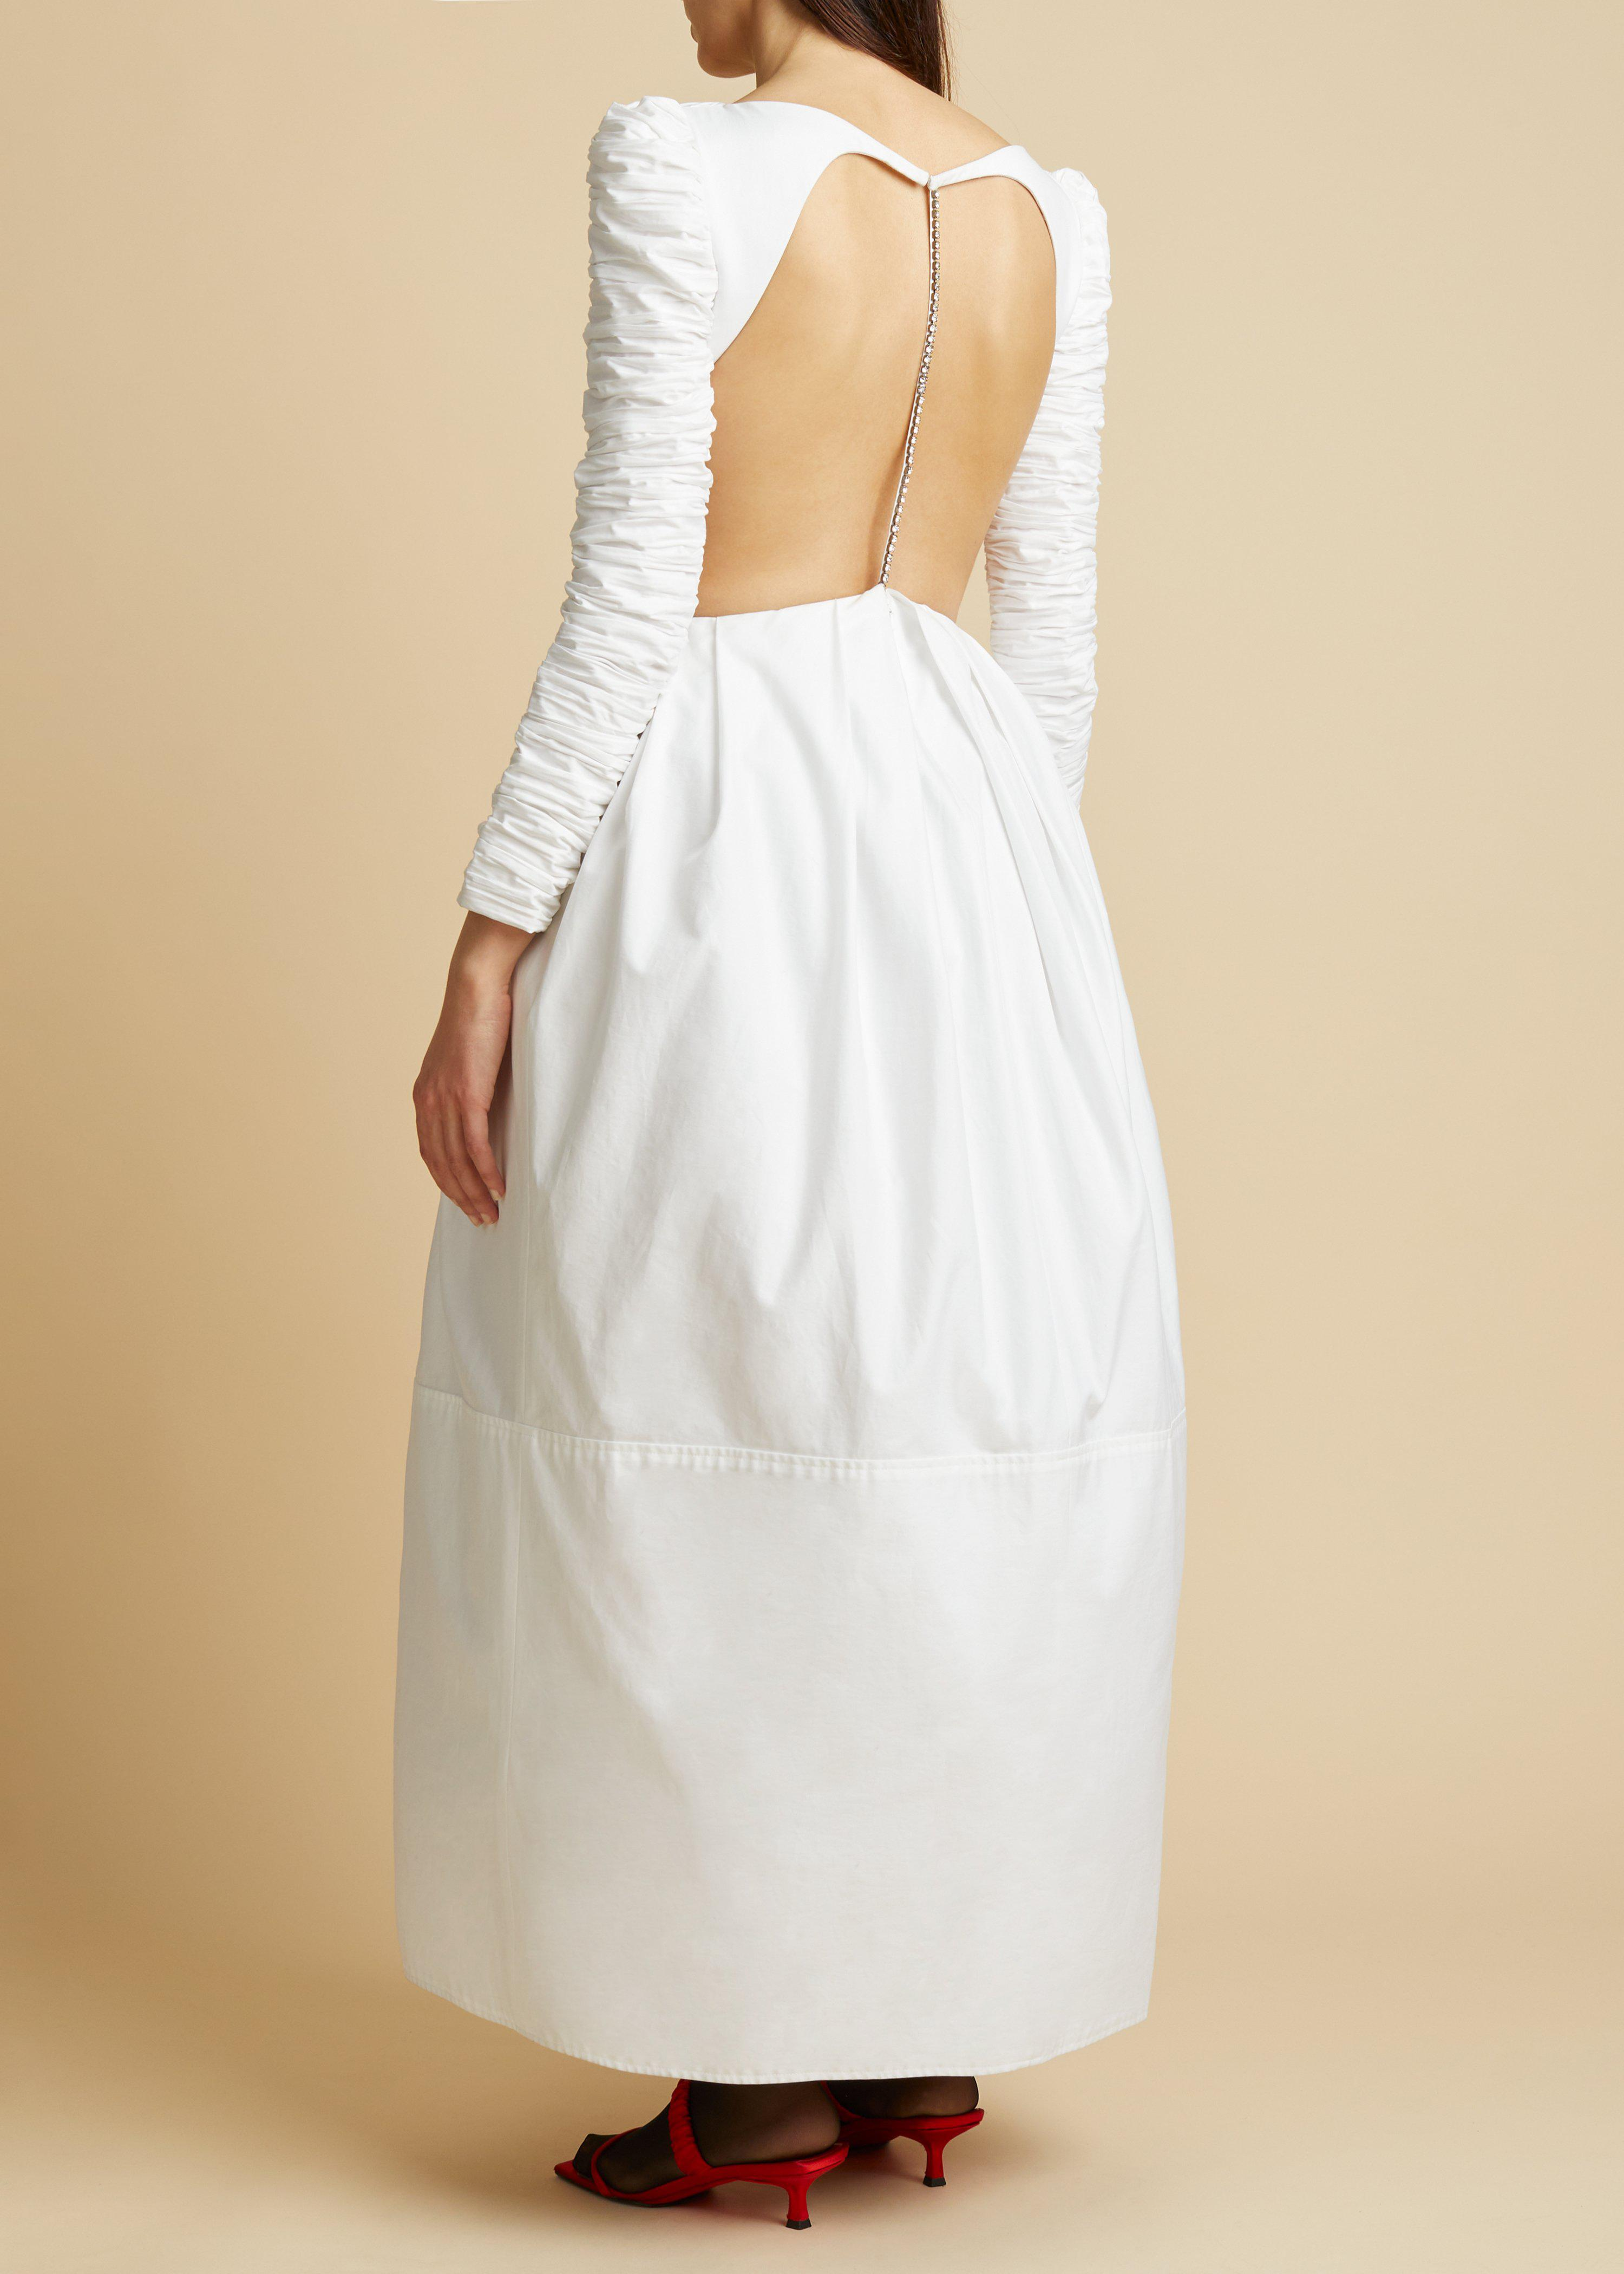 The Rosaline Dress with Petticoat in White 2